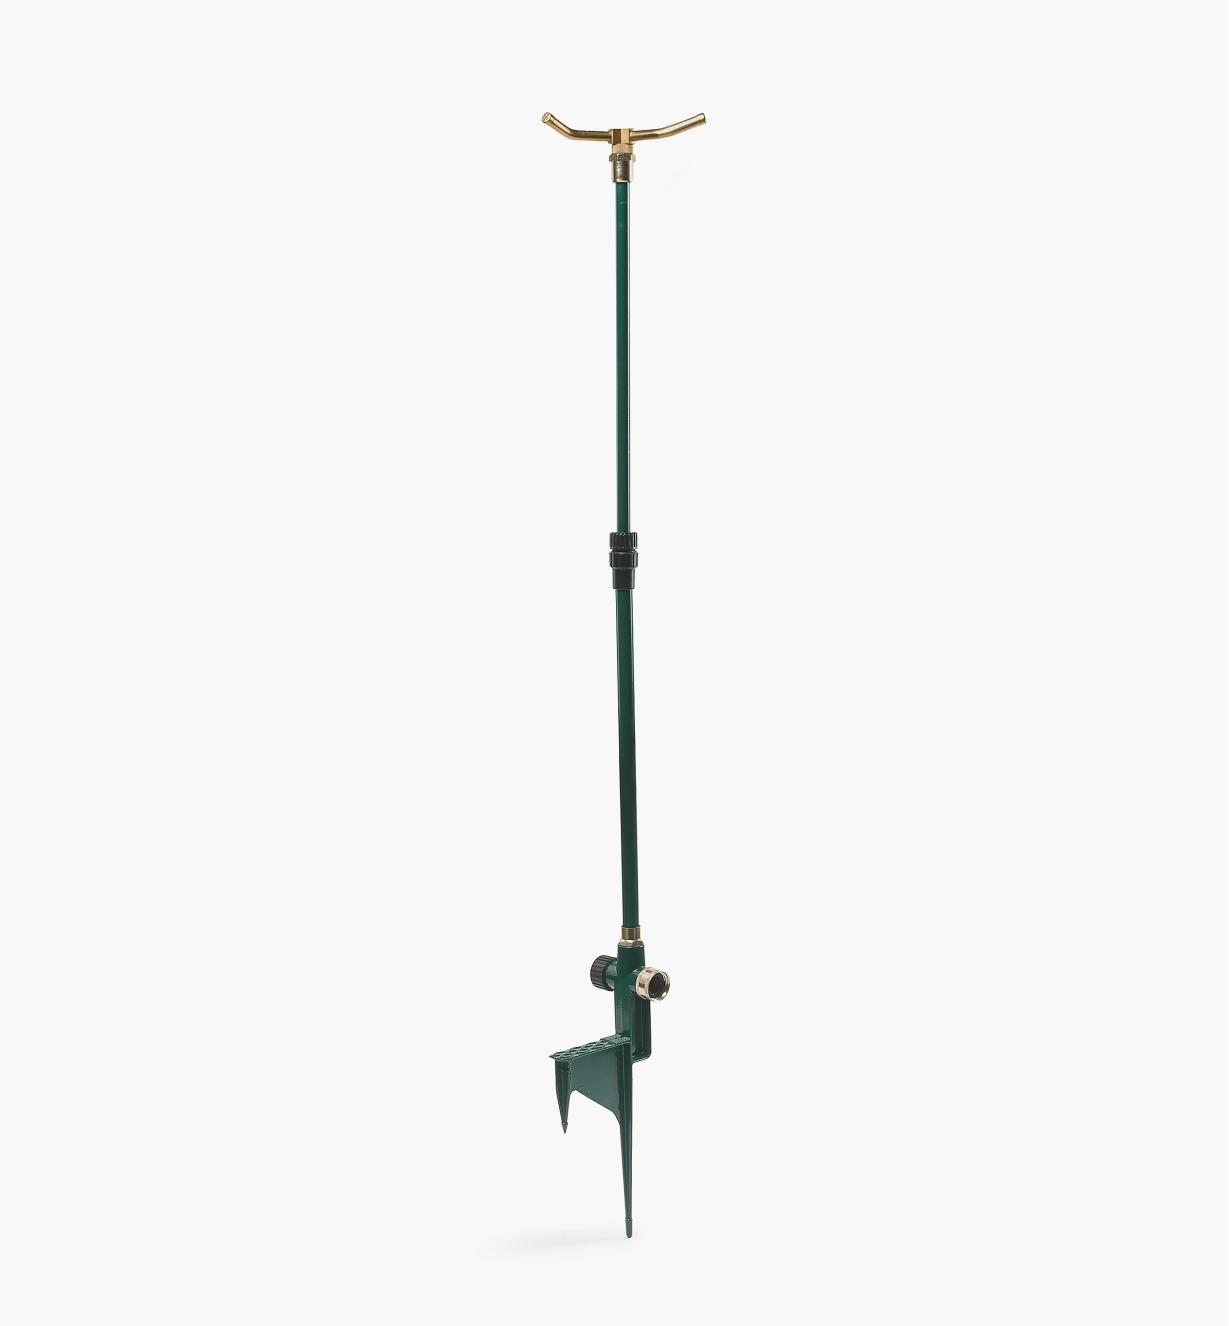 AB124 - Telescoping Rain Sprinkler